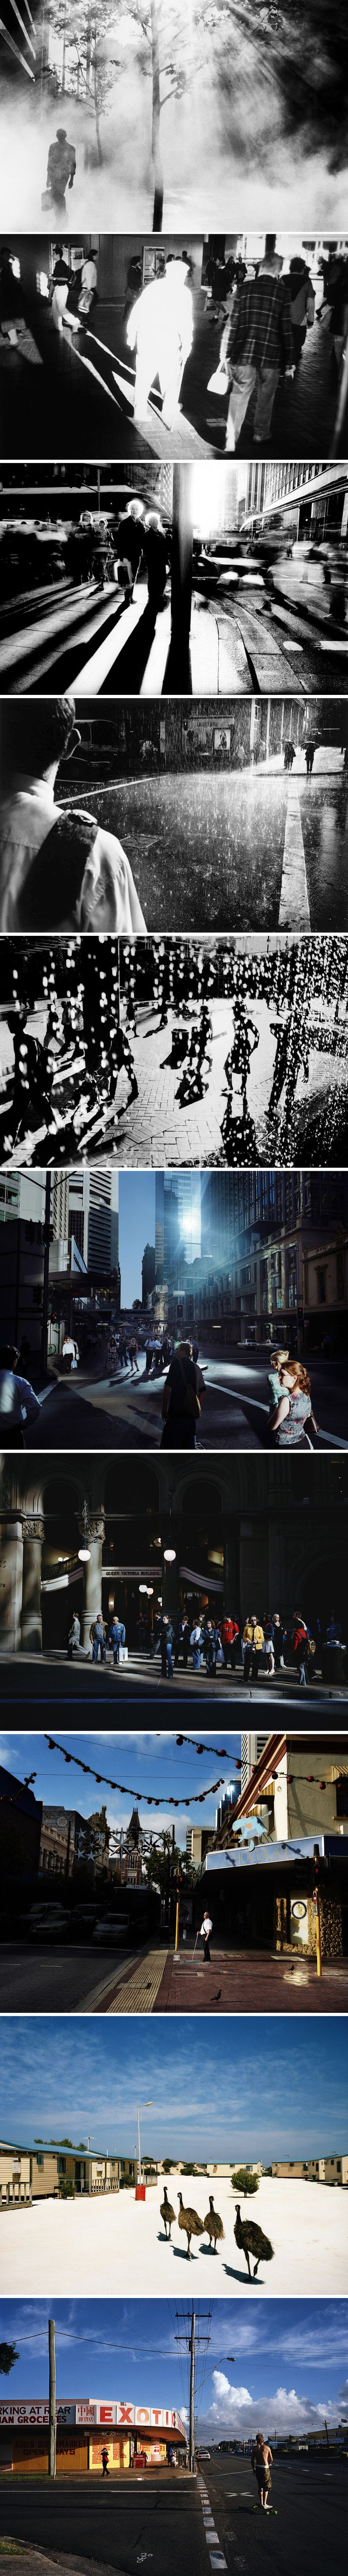 Trent Parke - amazing use of slow and fast shutter speed, formal elements and composition to create amazing moments of atmosphere out of the everyday street environment.